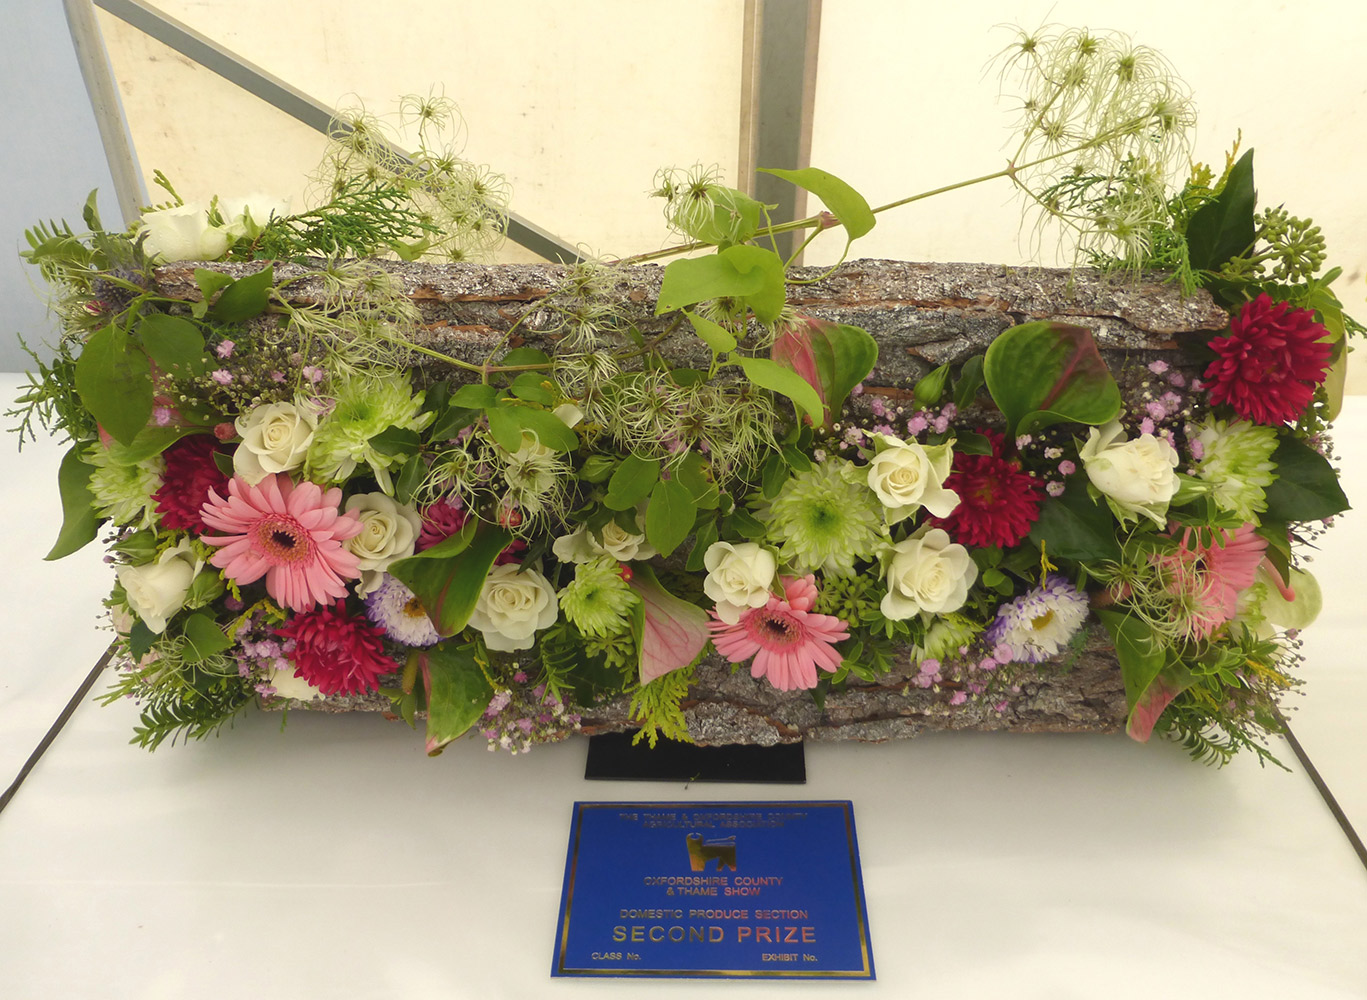 2. Jean Barker - Nature's Tapestry (Thame Show 2014)